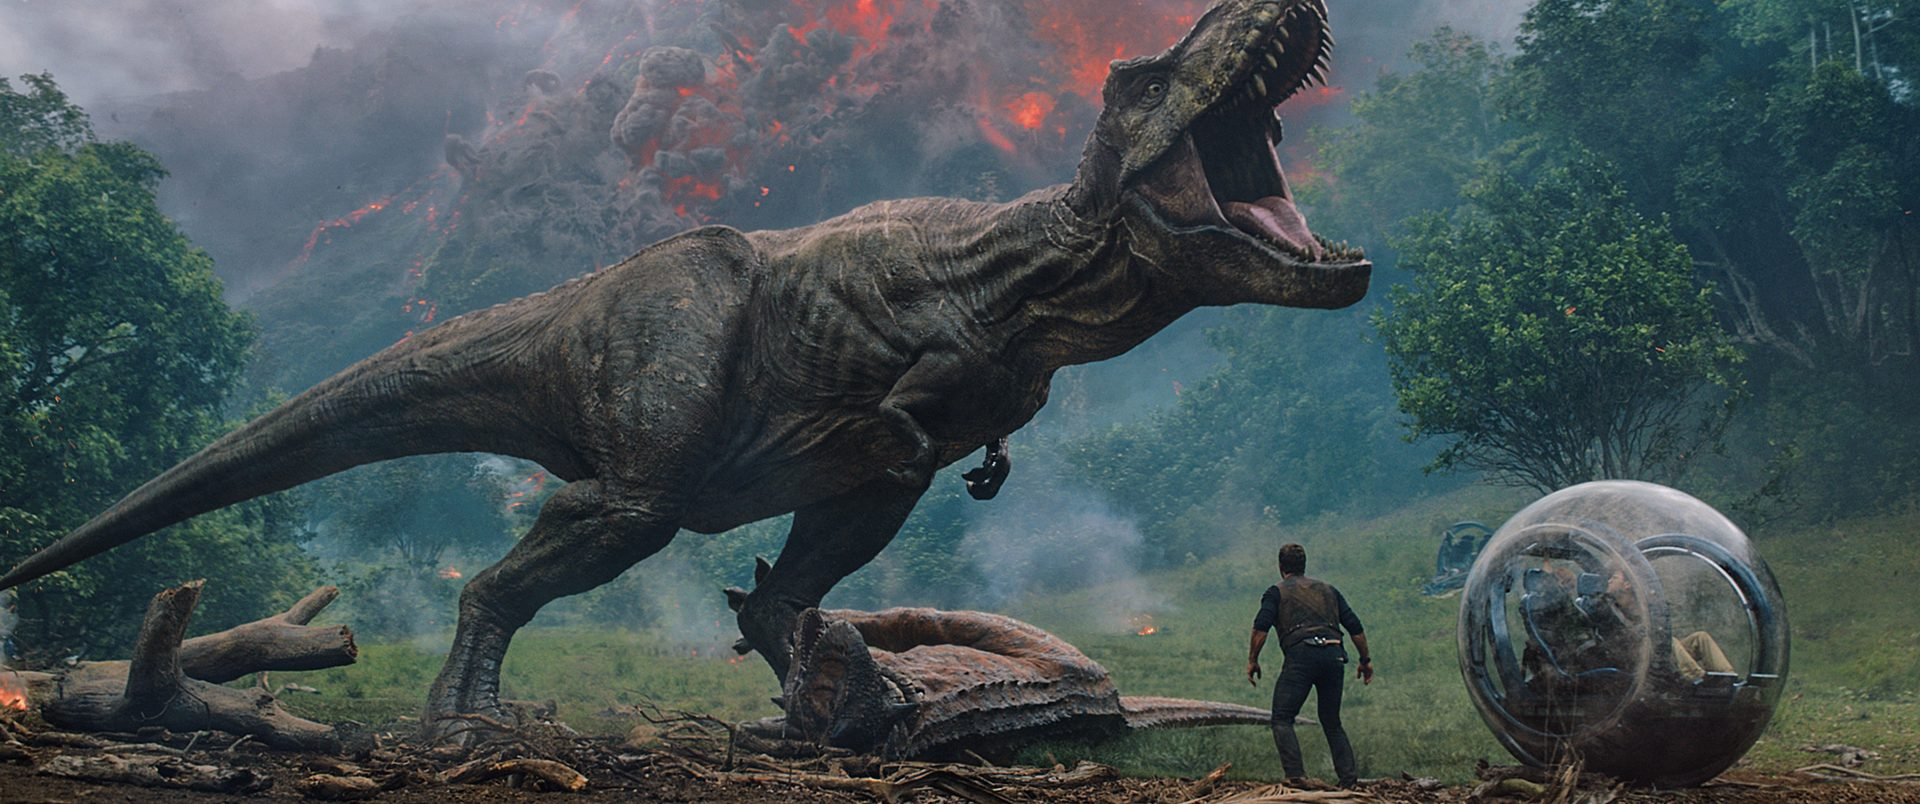 You could watch a special screening of Jurassic World at Vue's flagship venue!